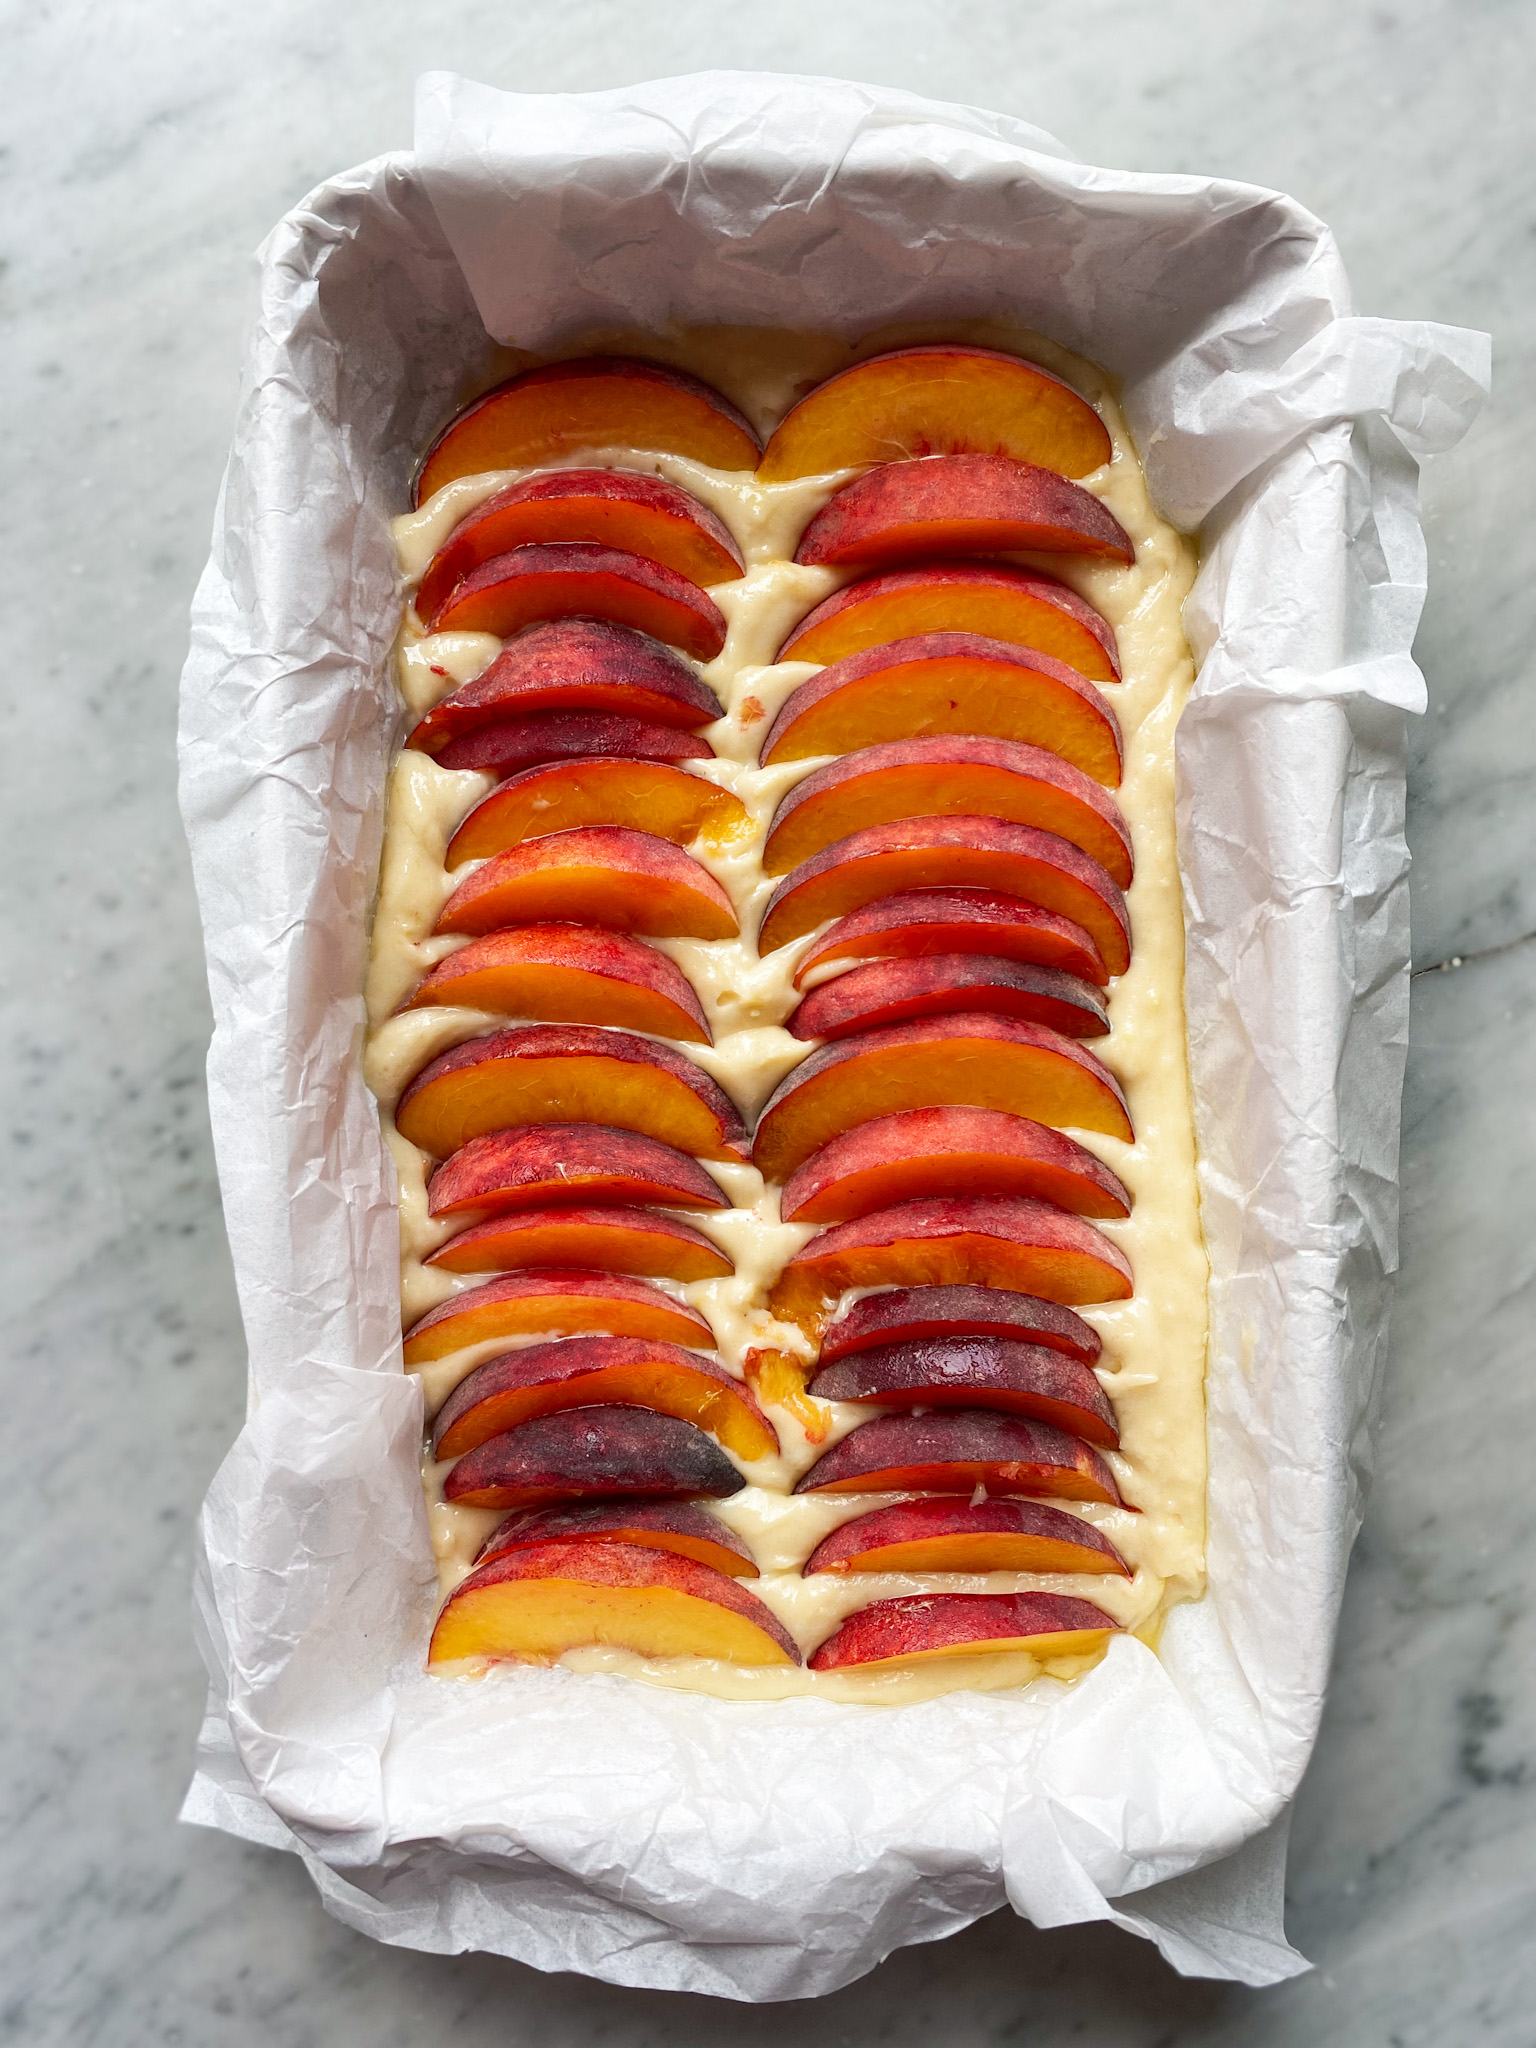 cake batter in parchment in a pan with sliced peaches on top